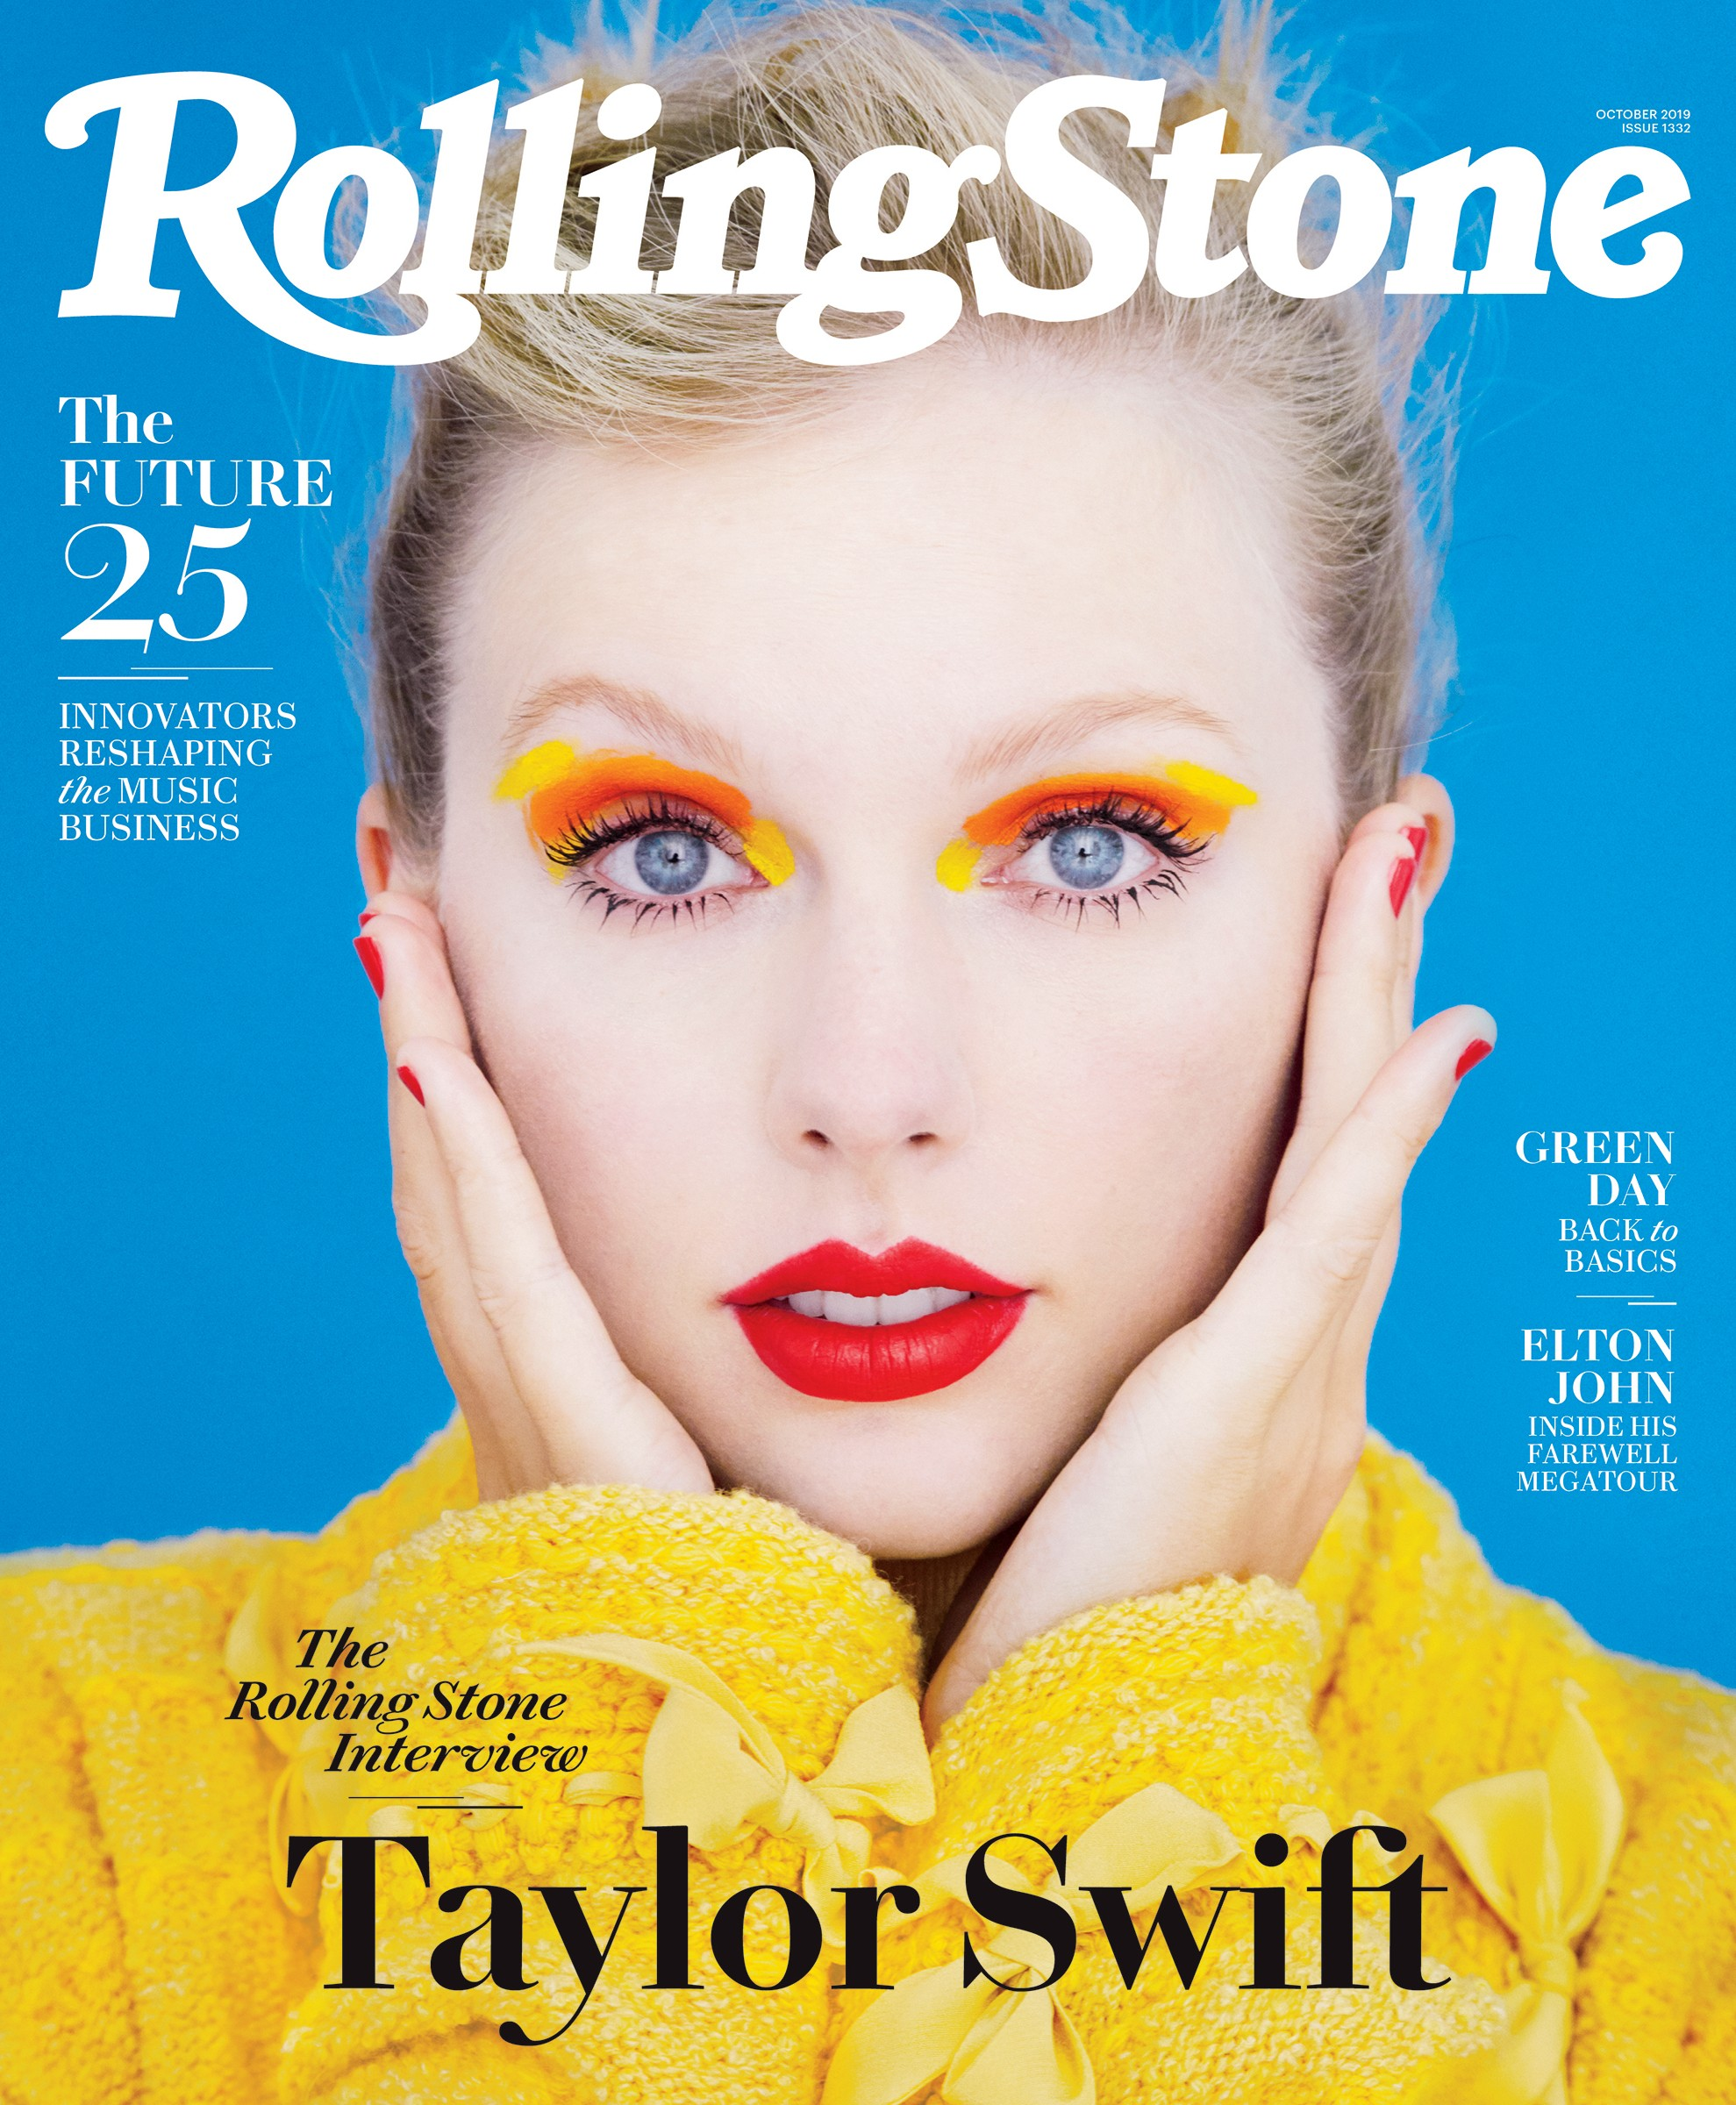 Taylor Swift Talks White Supremacy Kanye West Scooter Braun In Rolling Stone Interview